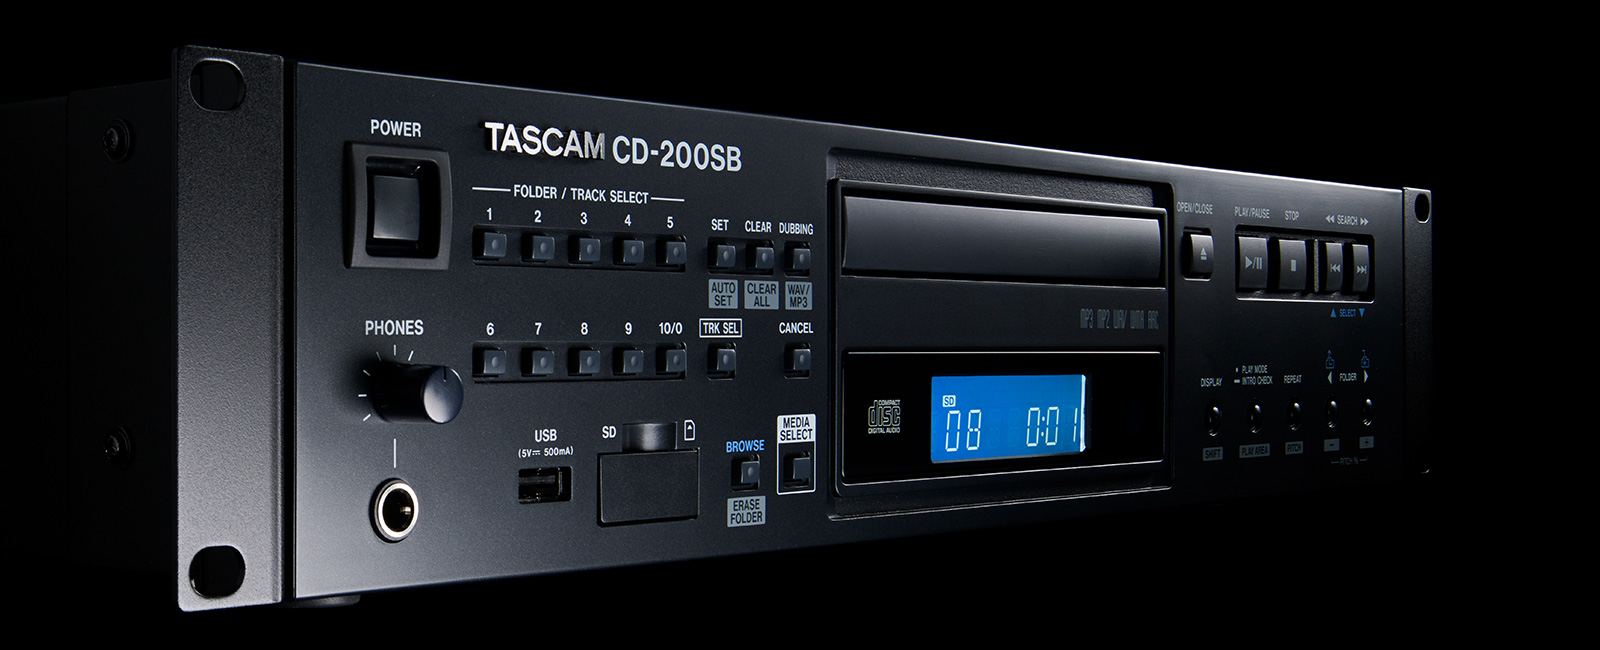 Tascam cd-200sb | solid-state/cd player.